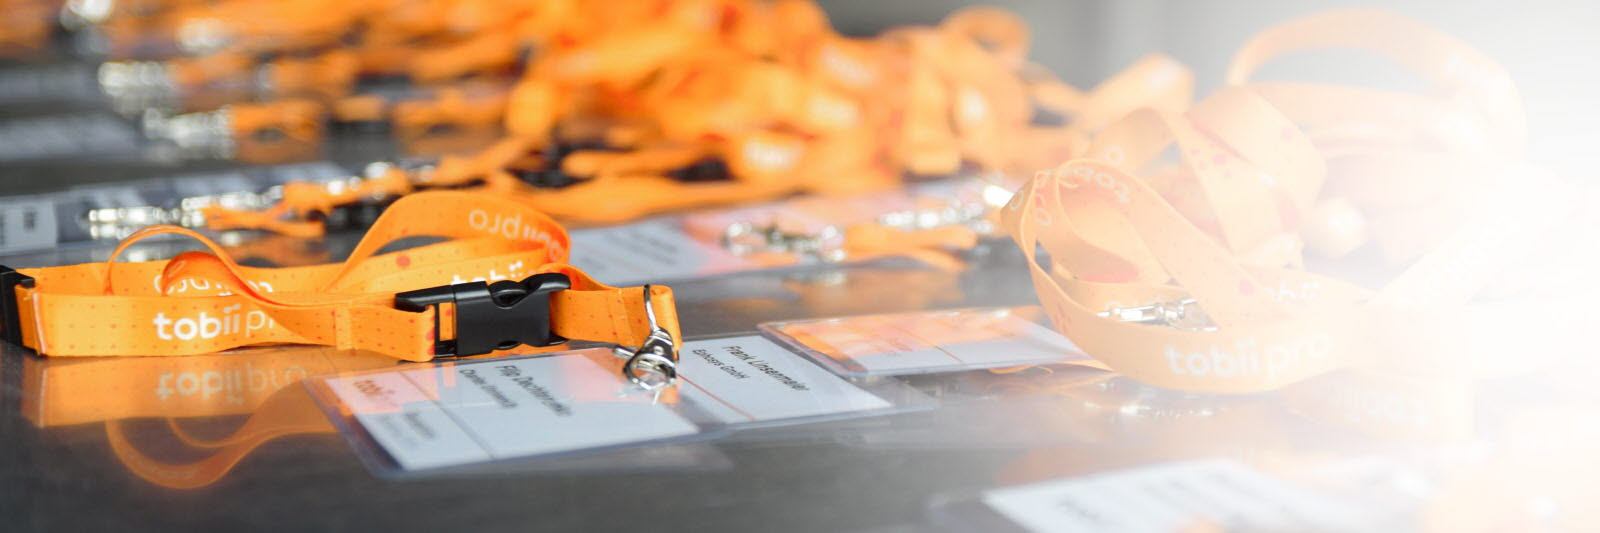 Tobii Pro conference badges on a table